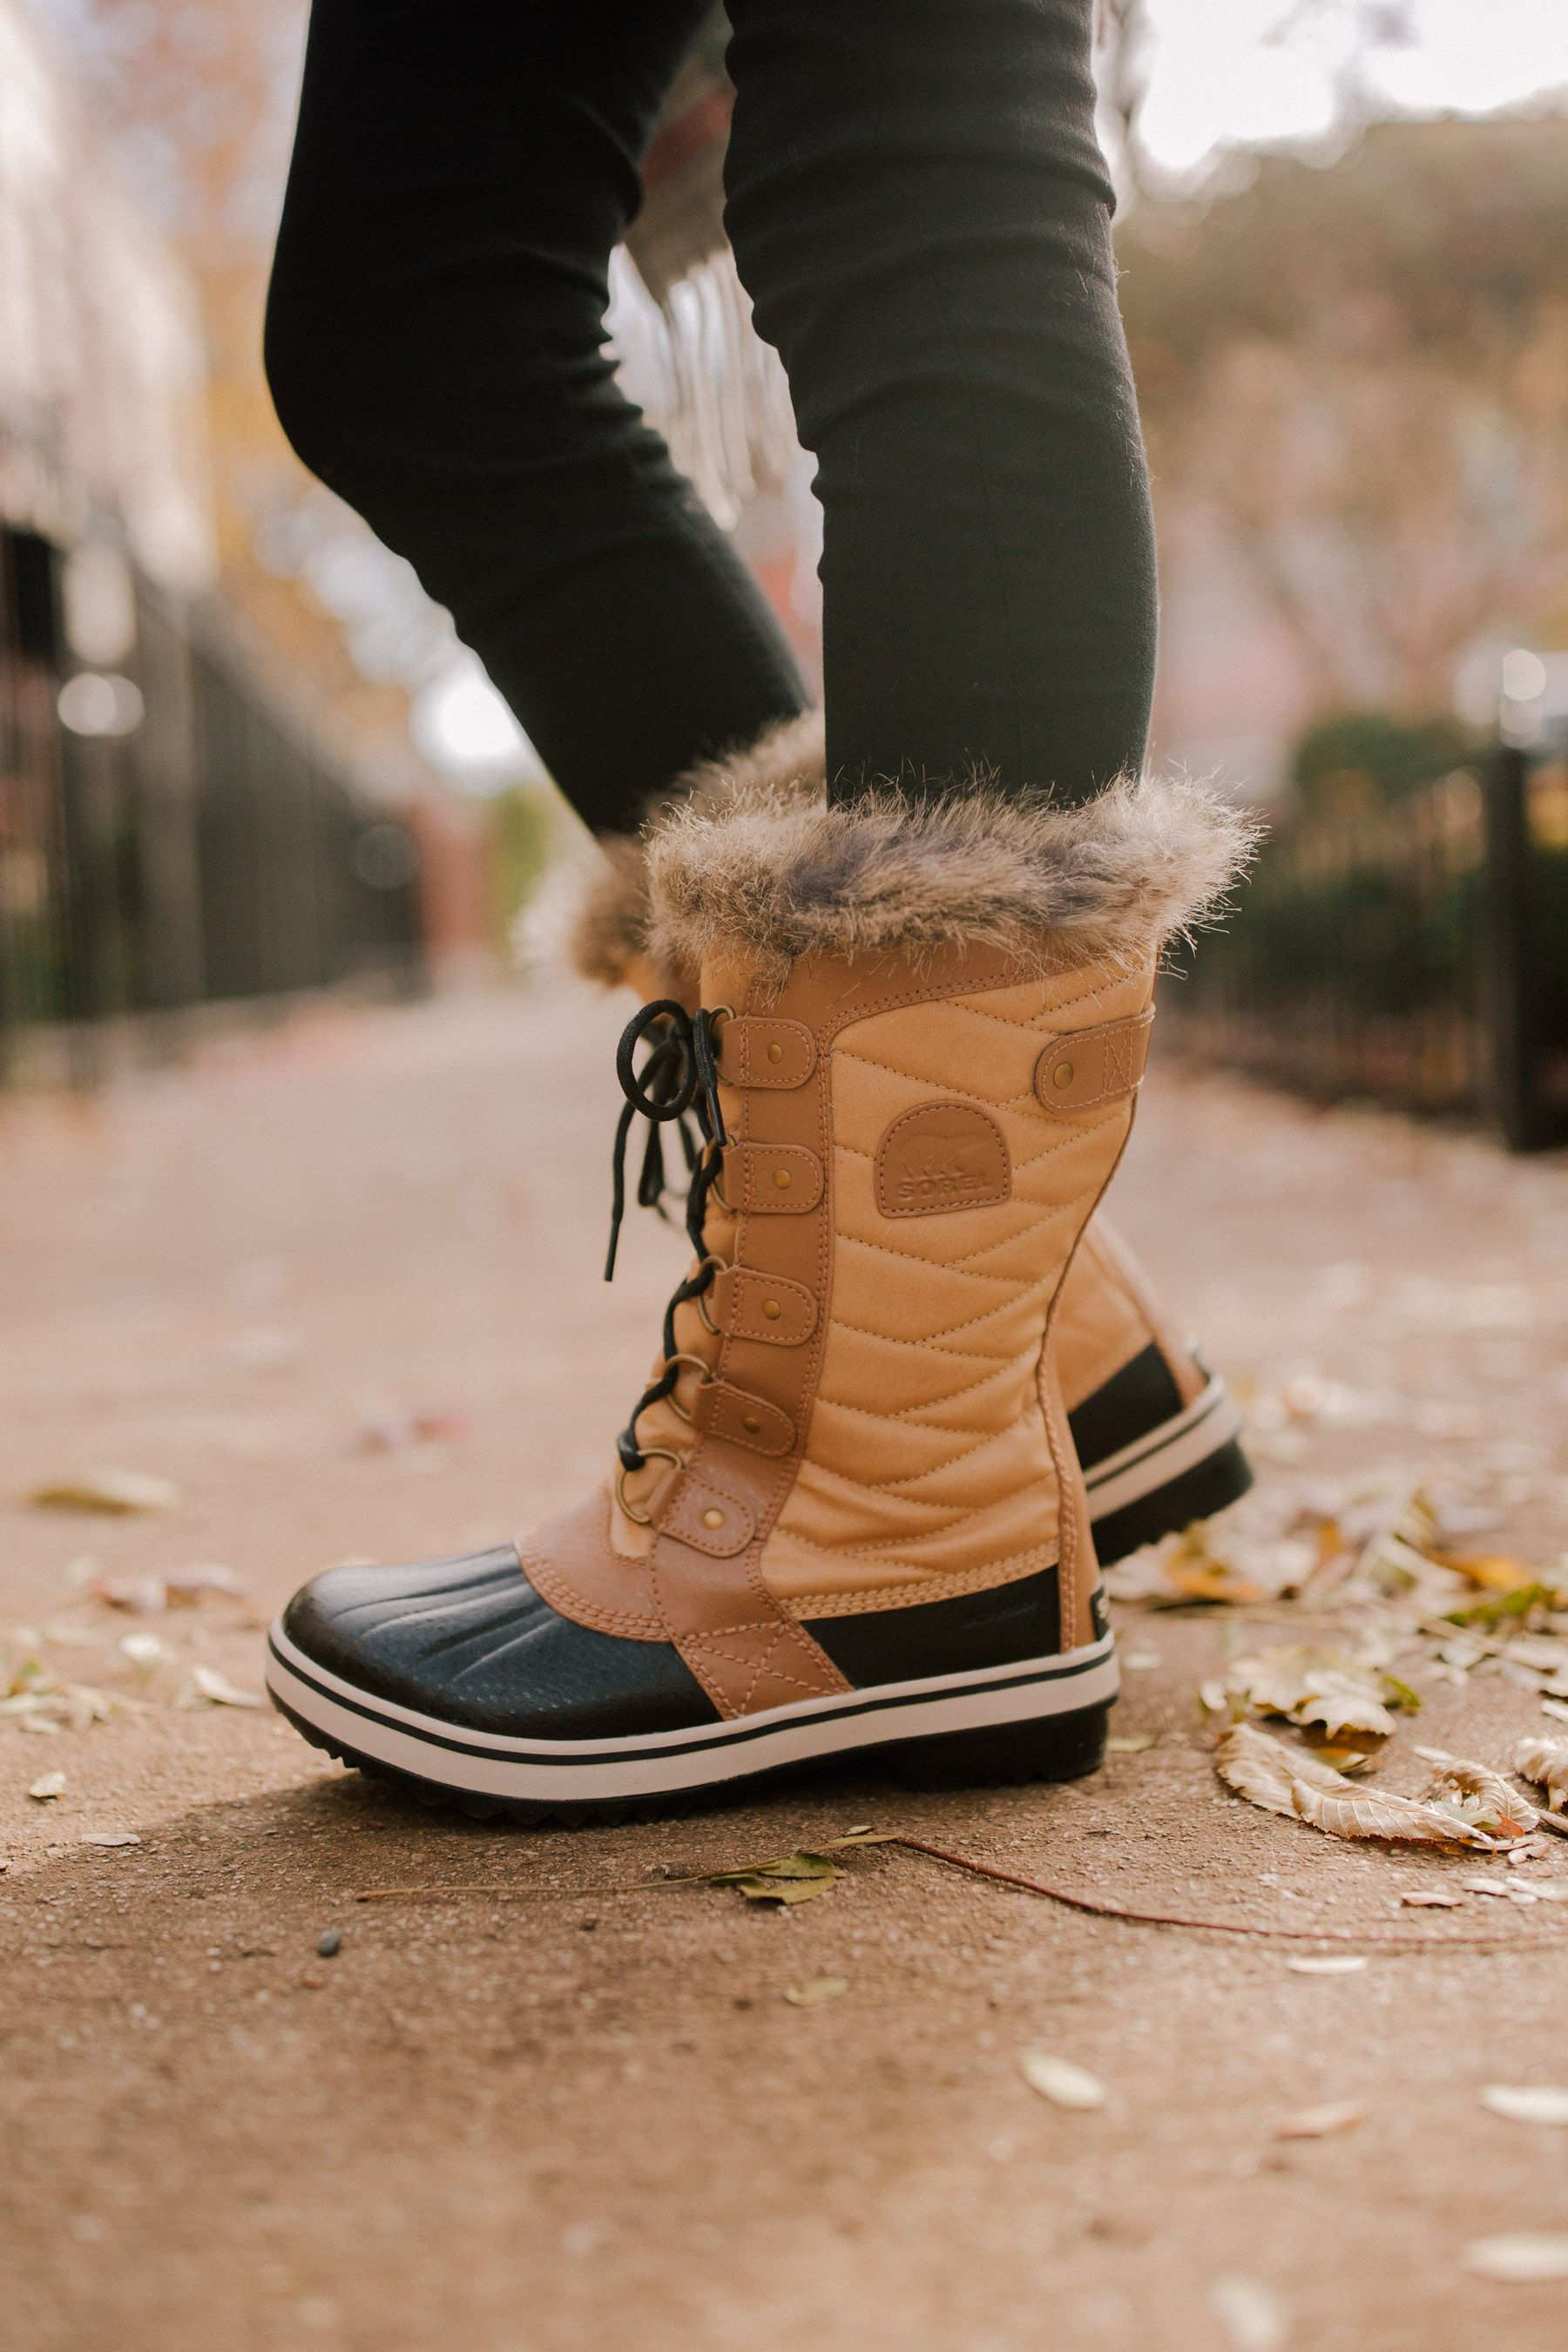 898d5cd644fa Sorel Tofino II Boots - Kelly in the City